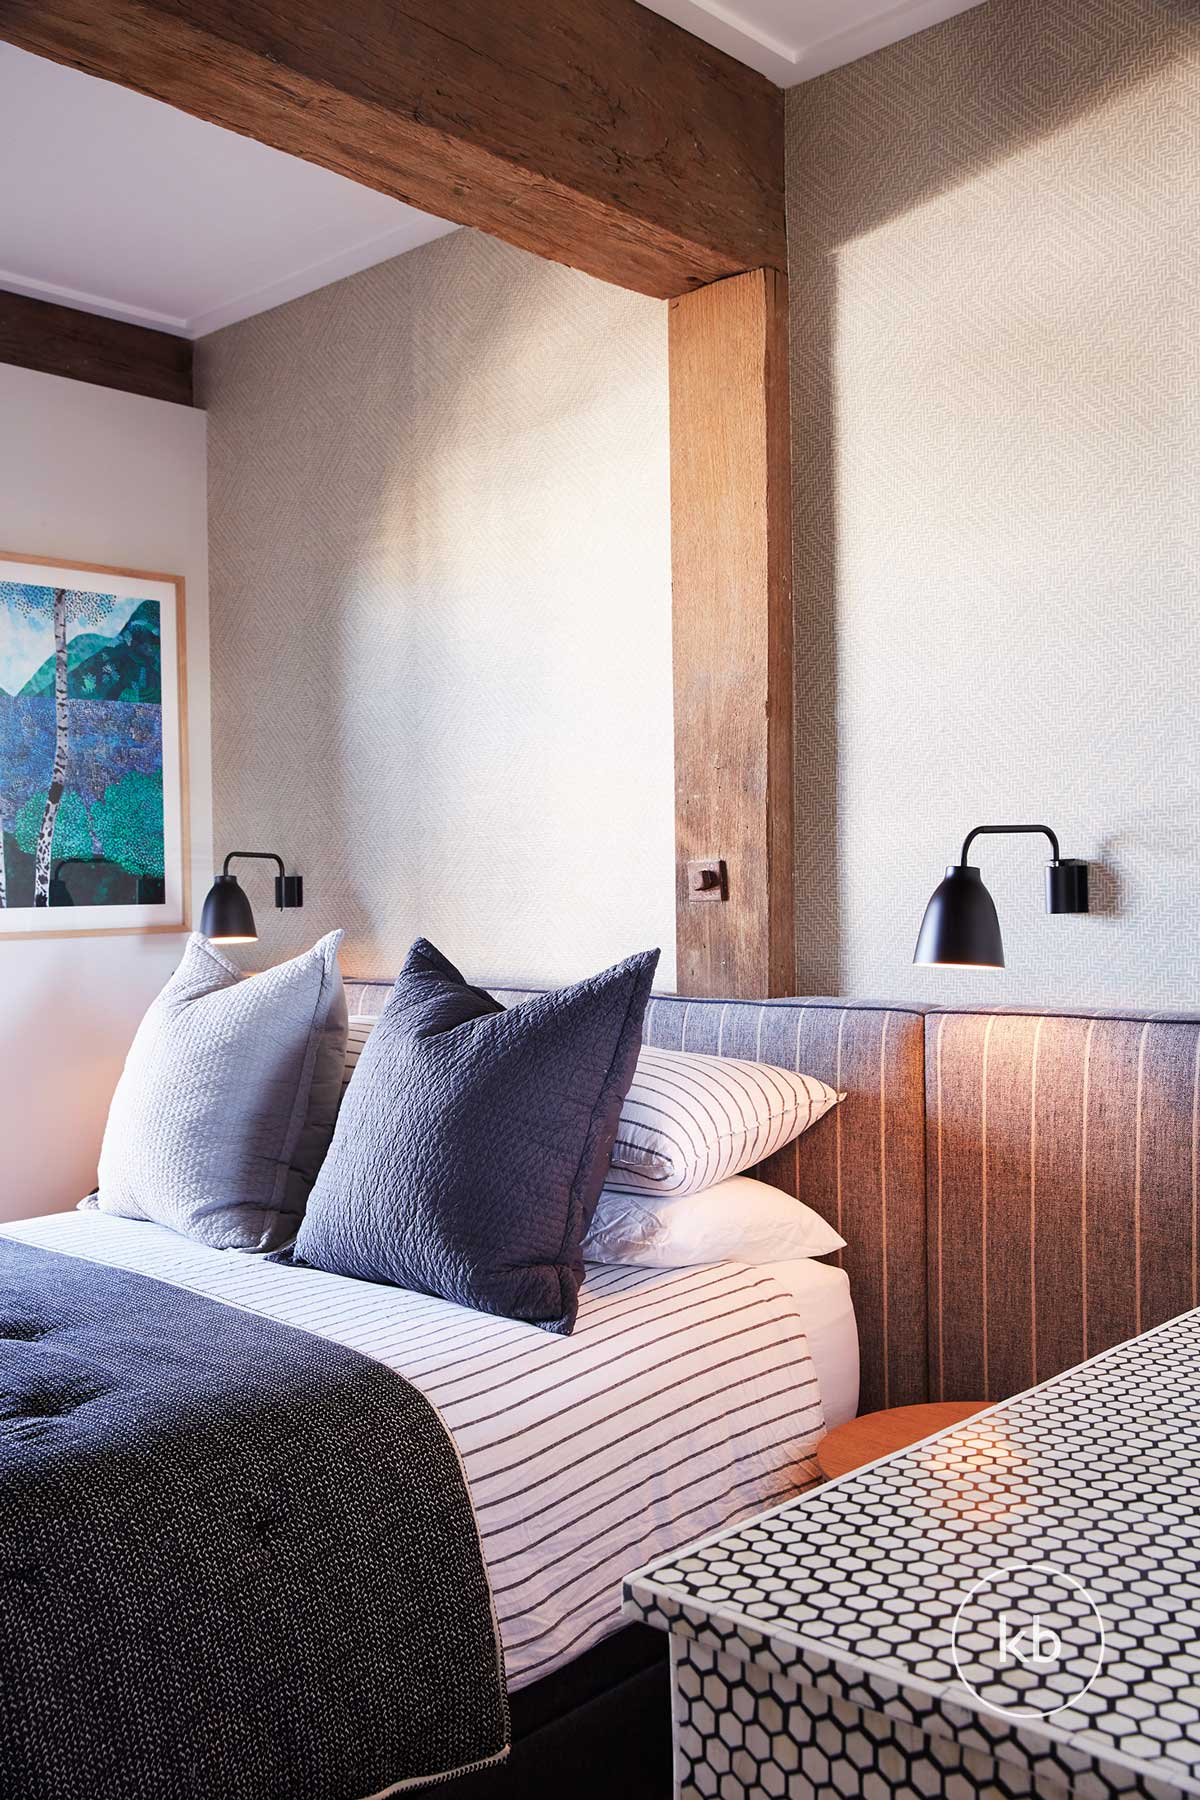 ©-Kate-Bell-Interior-Architecture-and-Design-08-Pyrmont-Project-Bedrooms-01.jpg